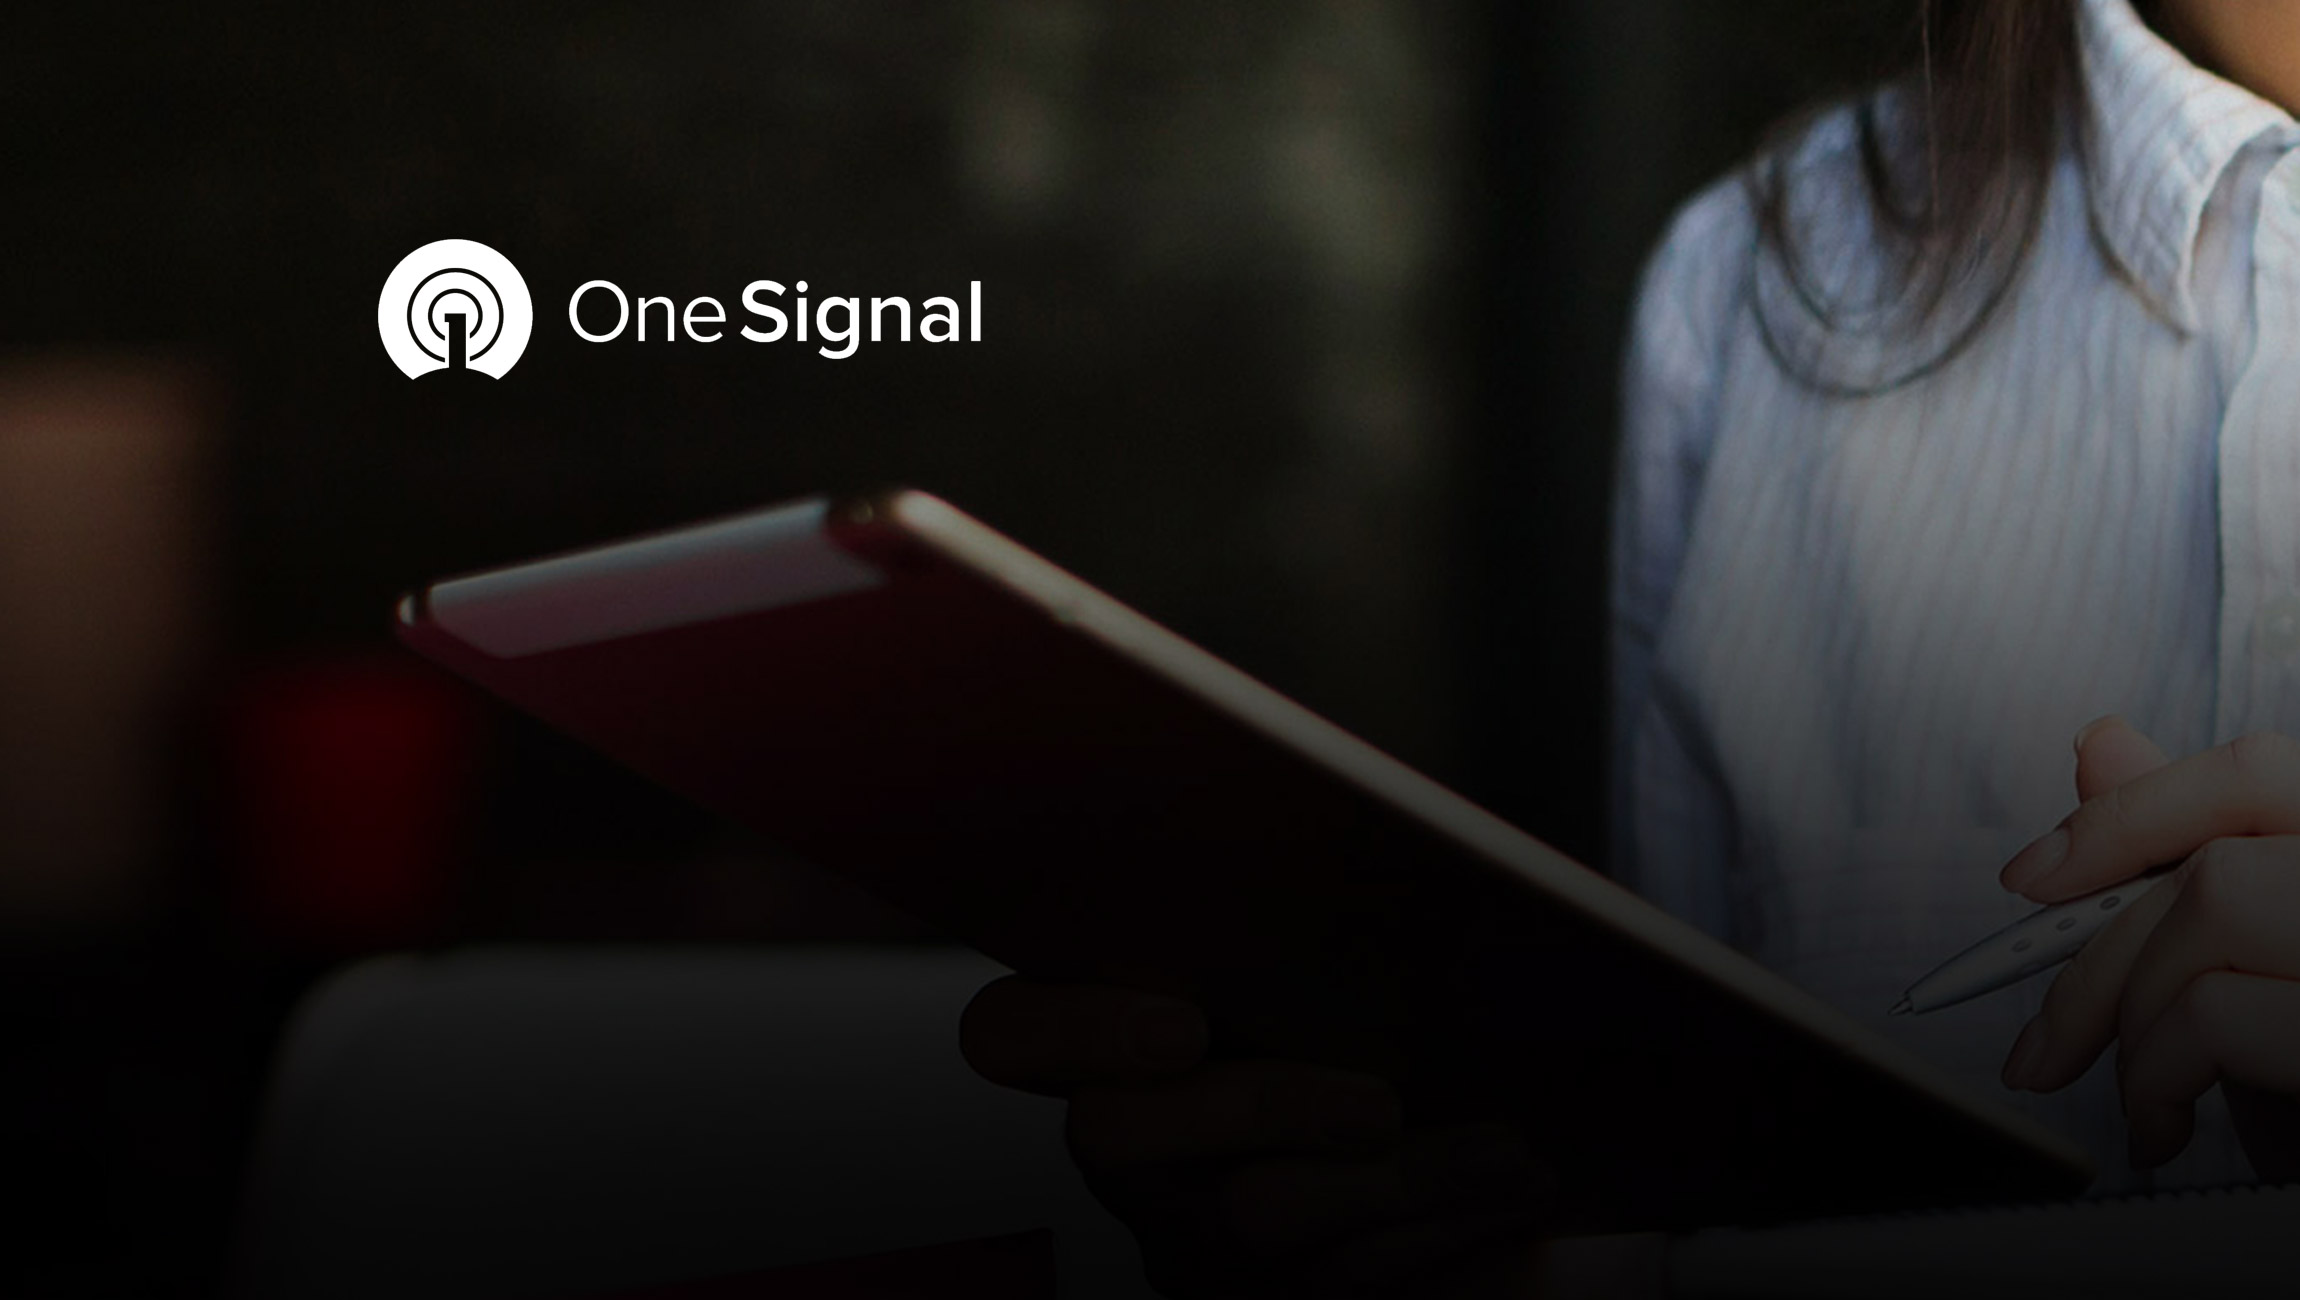 OneSignal Customer Data Shows Push Notifications Drive Significant Customer Engagement and Retention